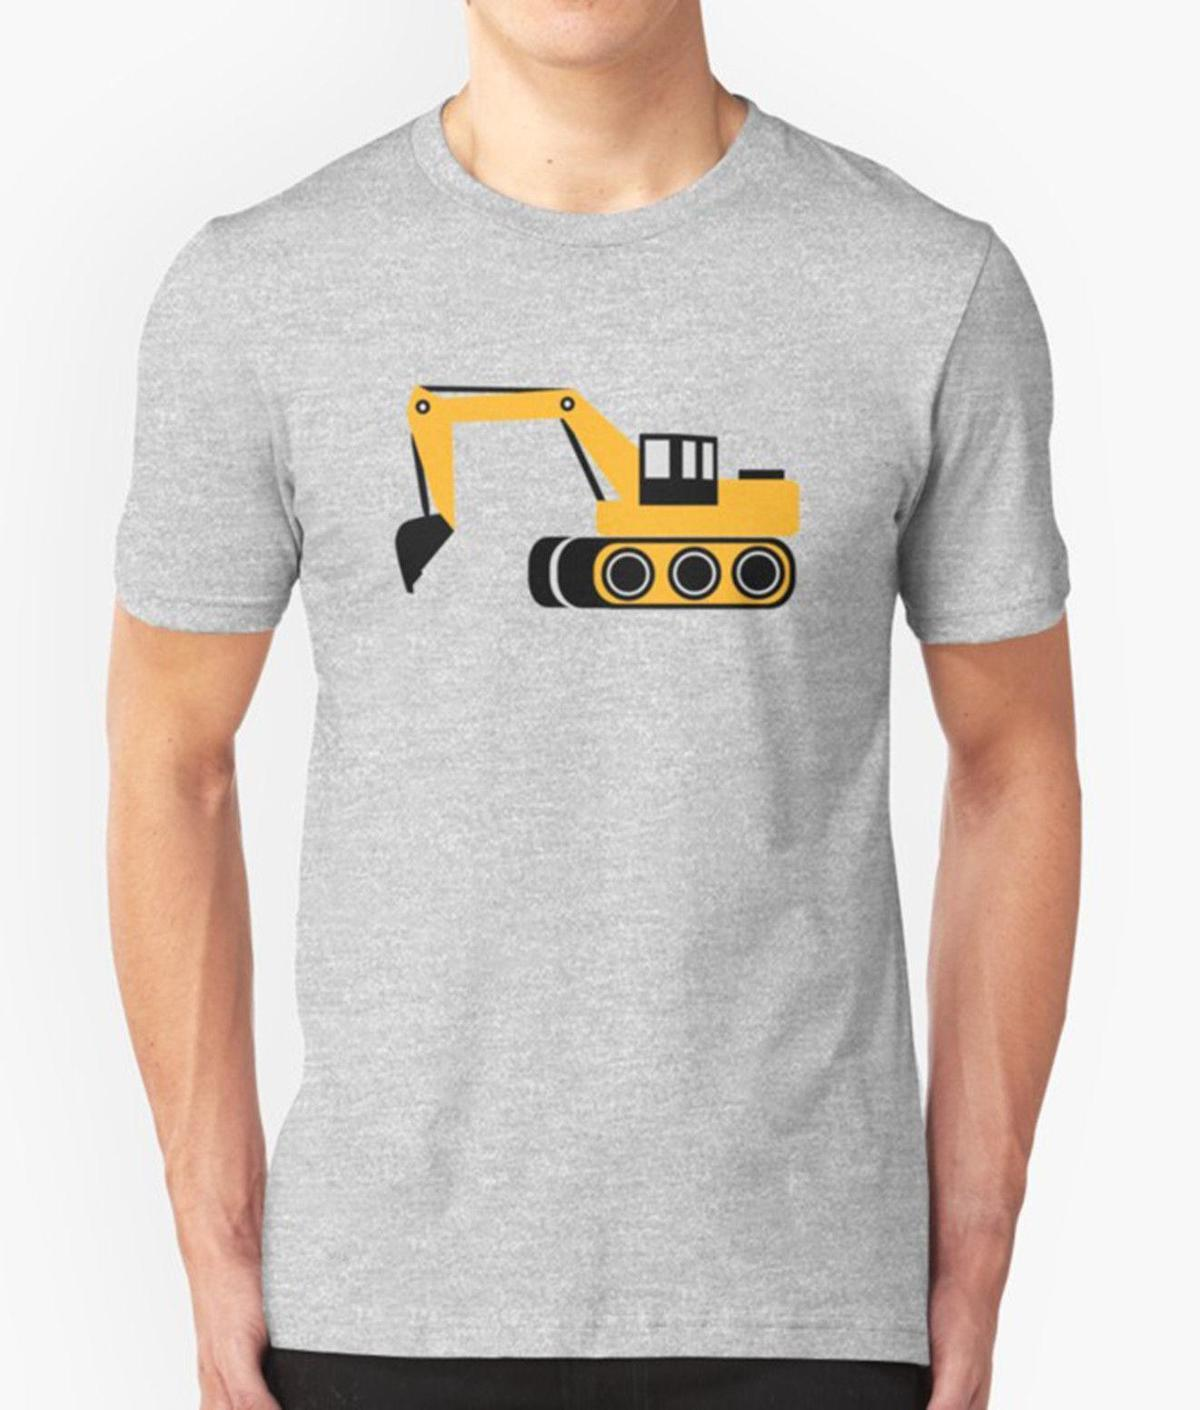 7efe07c10 EXCAVATOR T SHIRT CONSTRUCTION TRACTOR DIGGER UNCLE BROTHER DAD BIRTHDAY  PRESENT Mens Funny T Shirts Buy Shirts From Amesion10ljl, $12.08| DHgate.Com